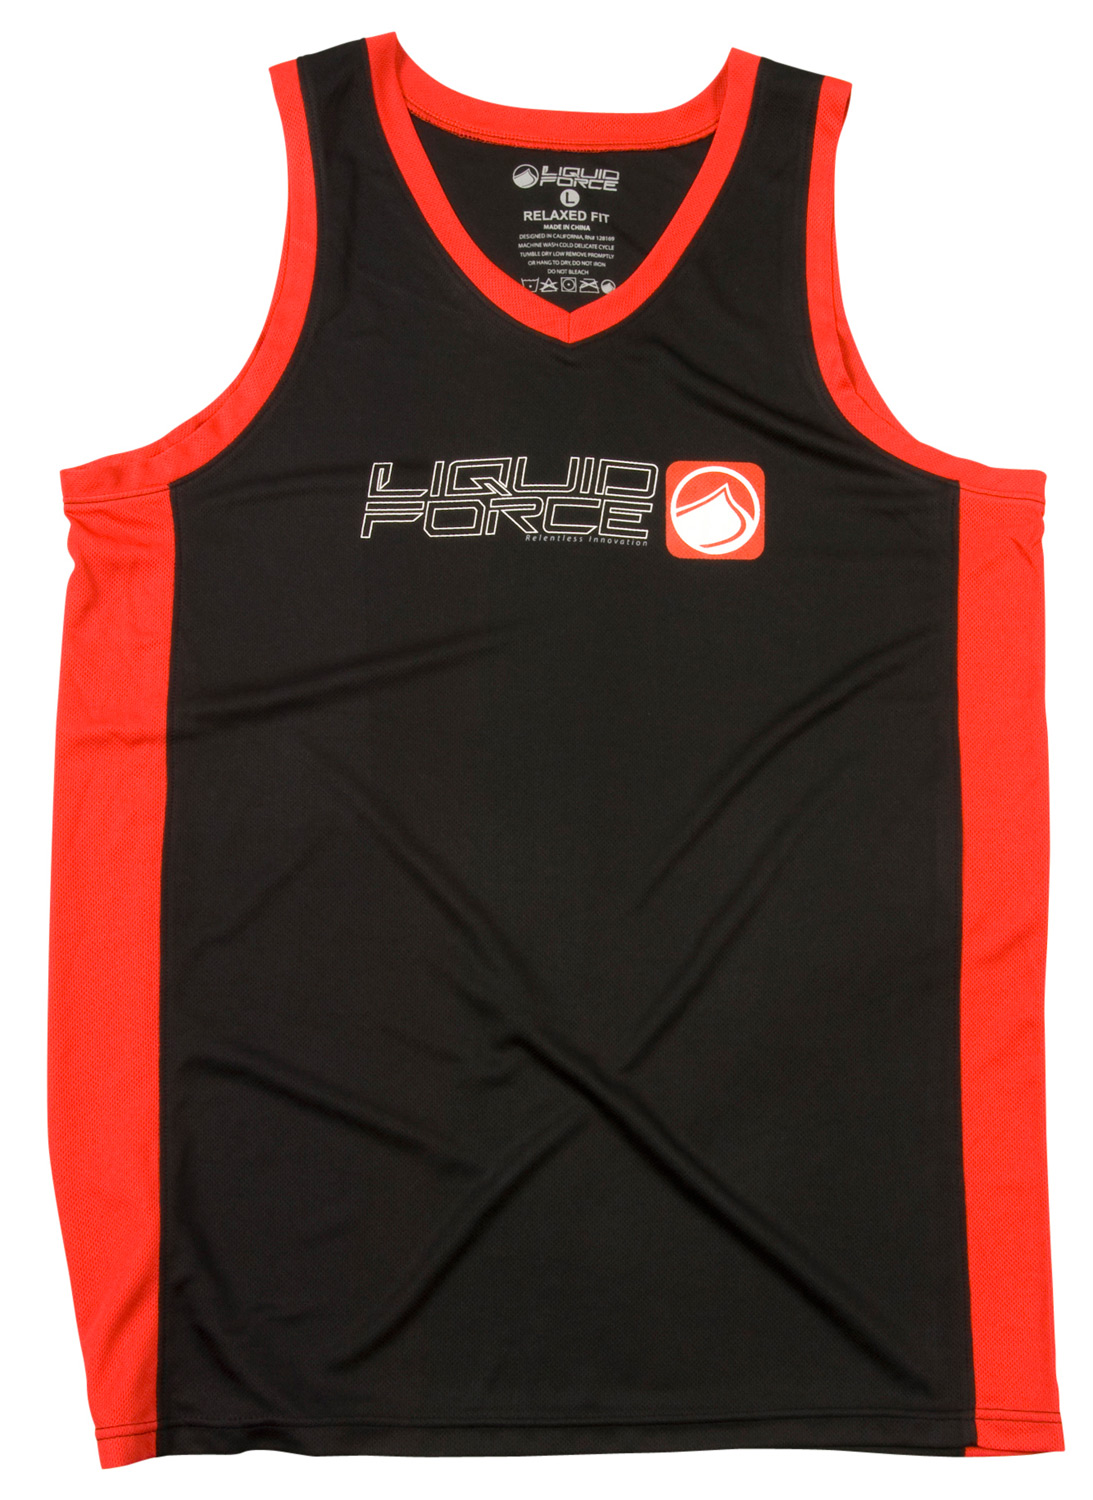 Surf Key Features of the Liquid Force Push It Riding Tank: Wicking Fabric Tank Top Loose Fit Offers UV and rash protection 4-way stretch - $34.95